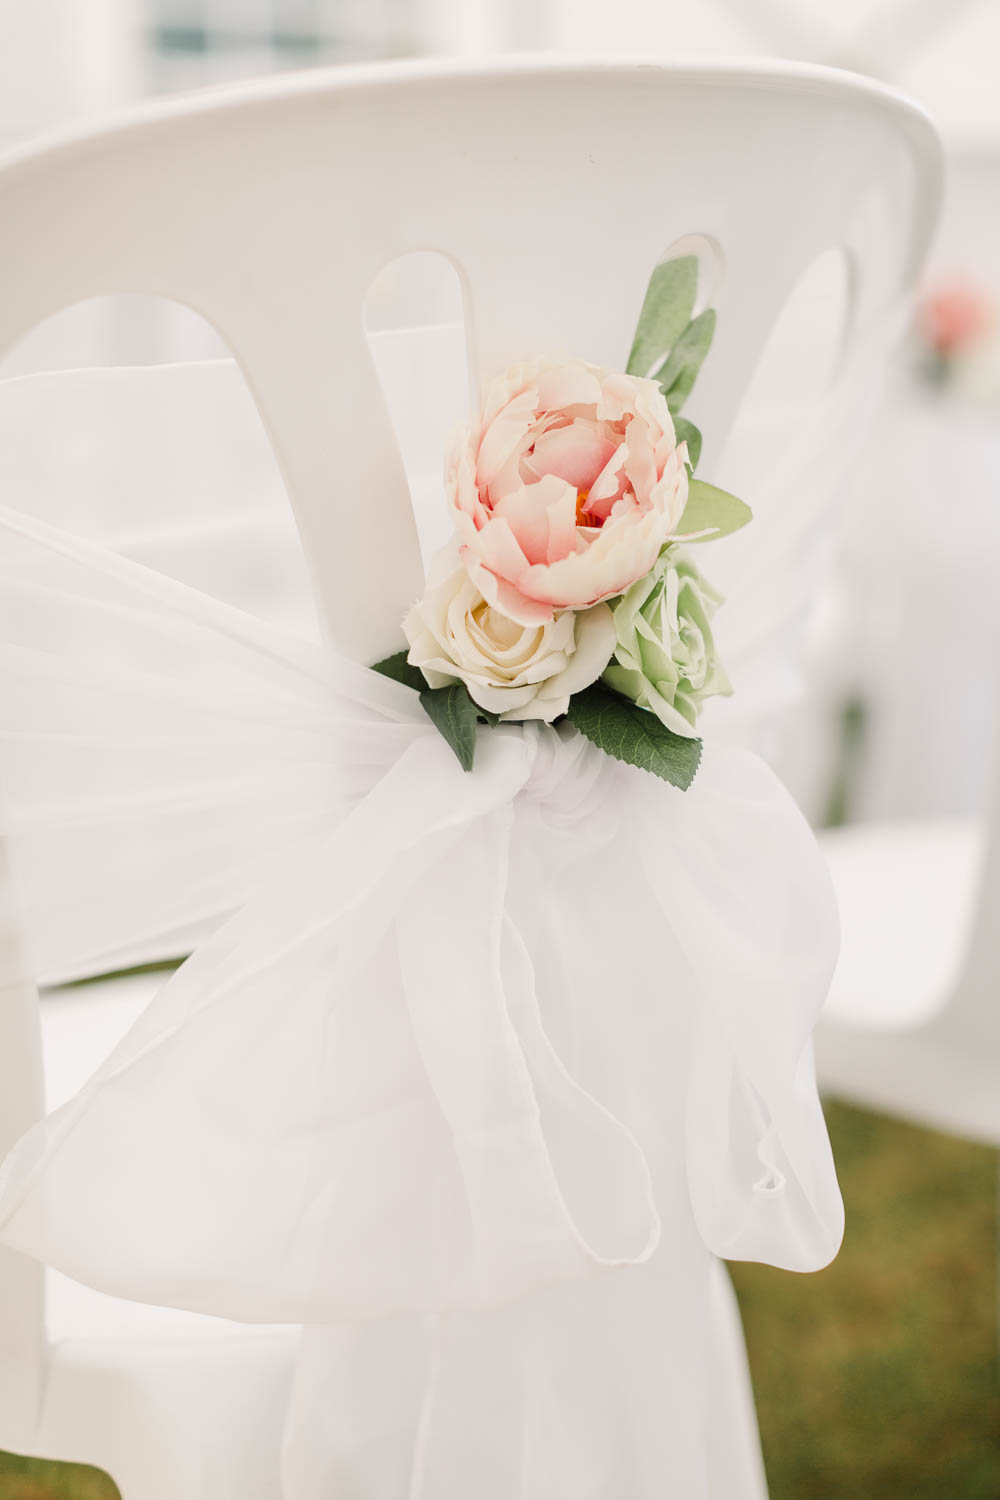 Chair Tie Back Peony Voile Tulle Sash Brewerstreet Farmhouse Wedding Danielle Smith Photography